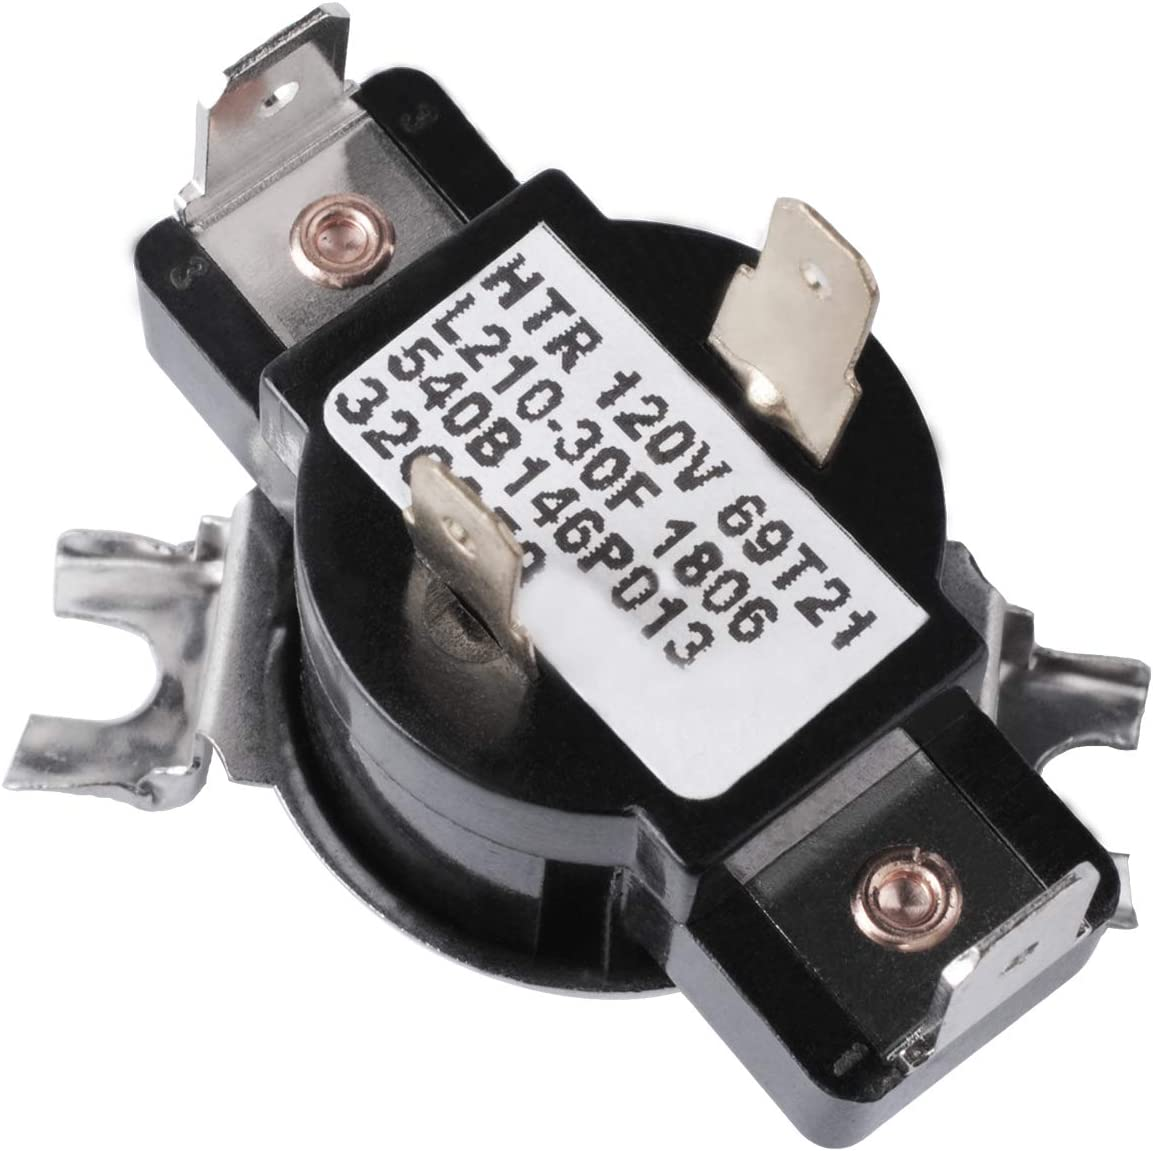 Gekufa WE4M181 Dryer Cycling Thermostat Compatible with GE, Hotpoint, Kenmore - Replaces AP2044414, PS267926